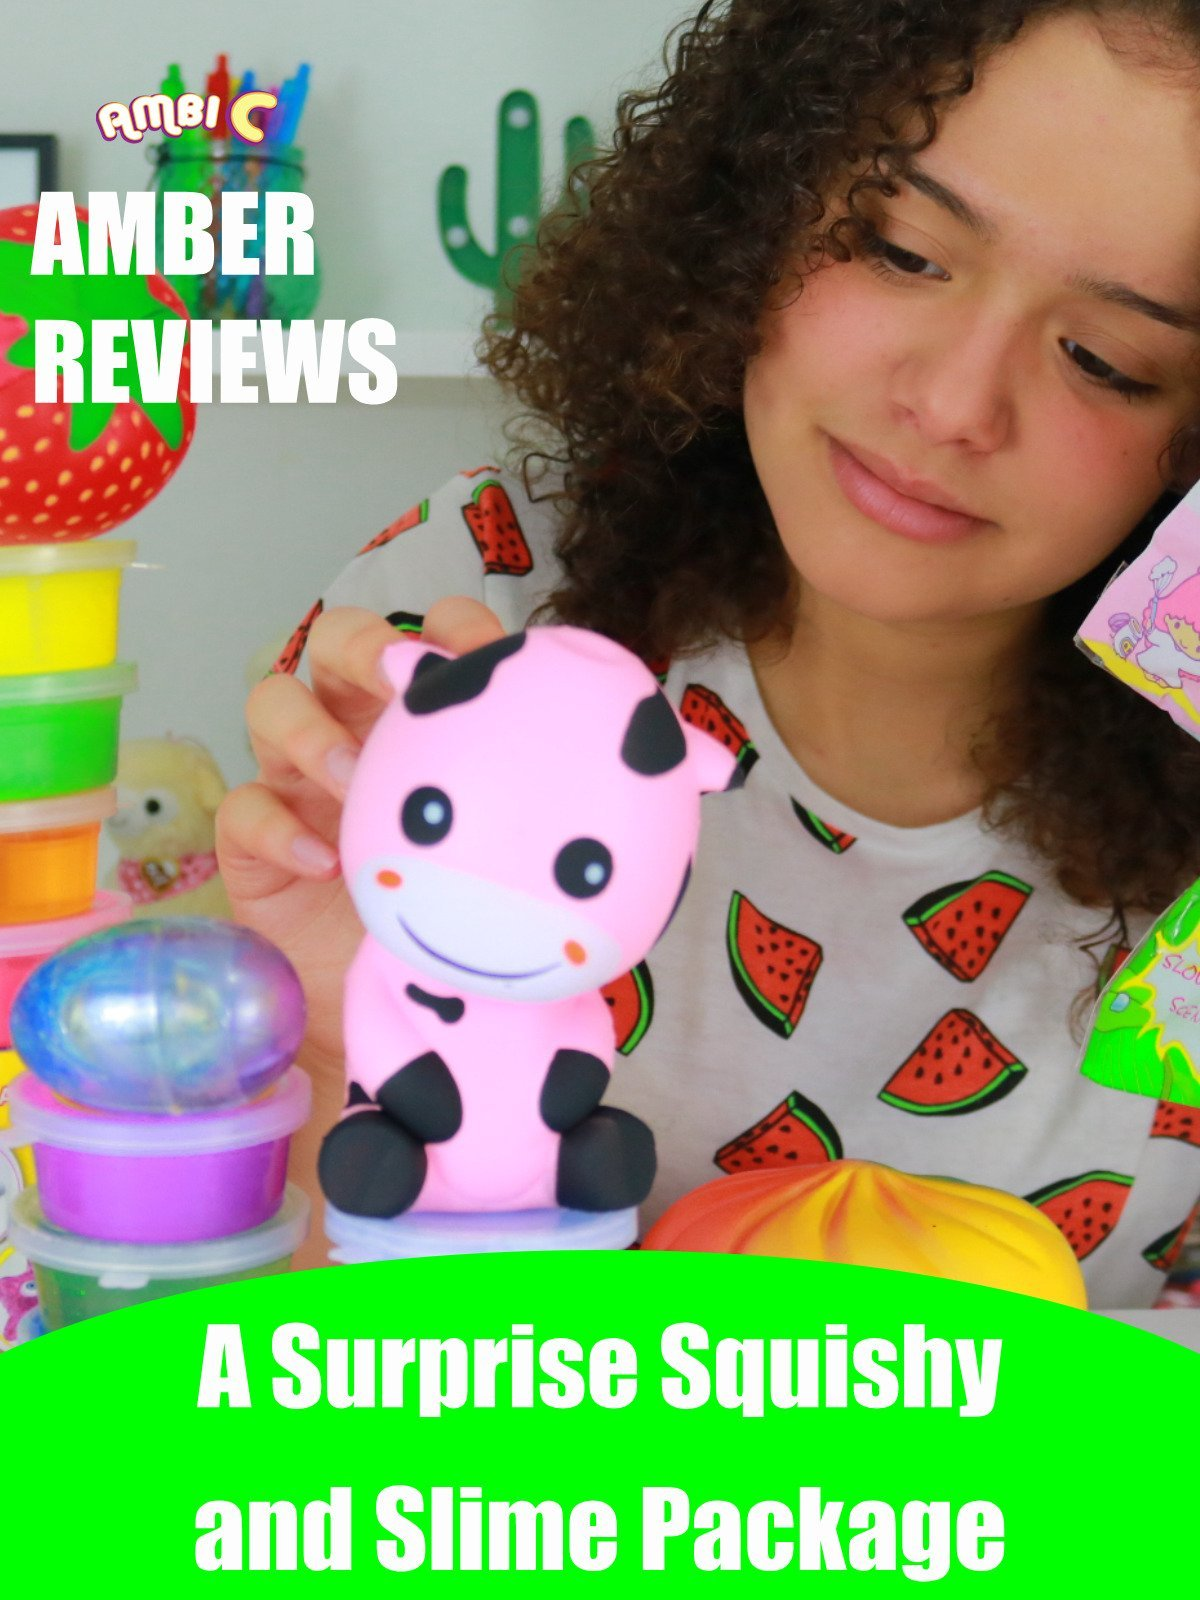 Amber Reviews a Surprise Squishy and Slime Package